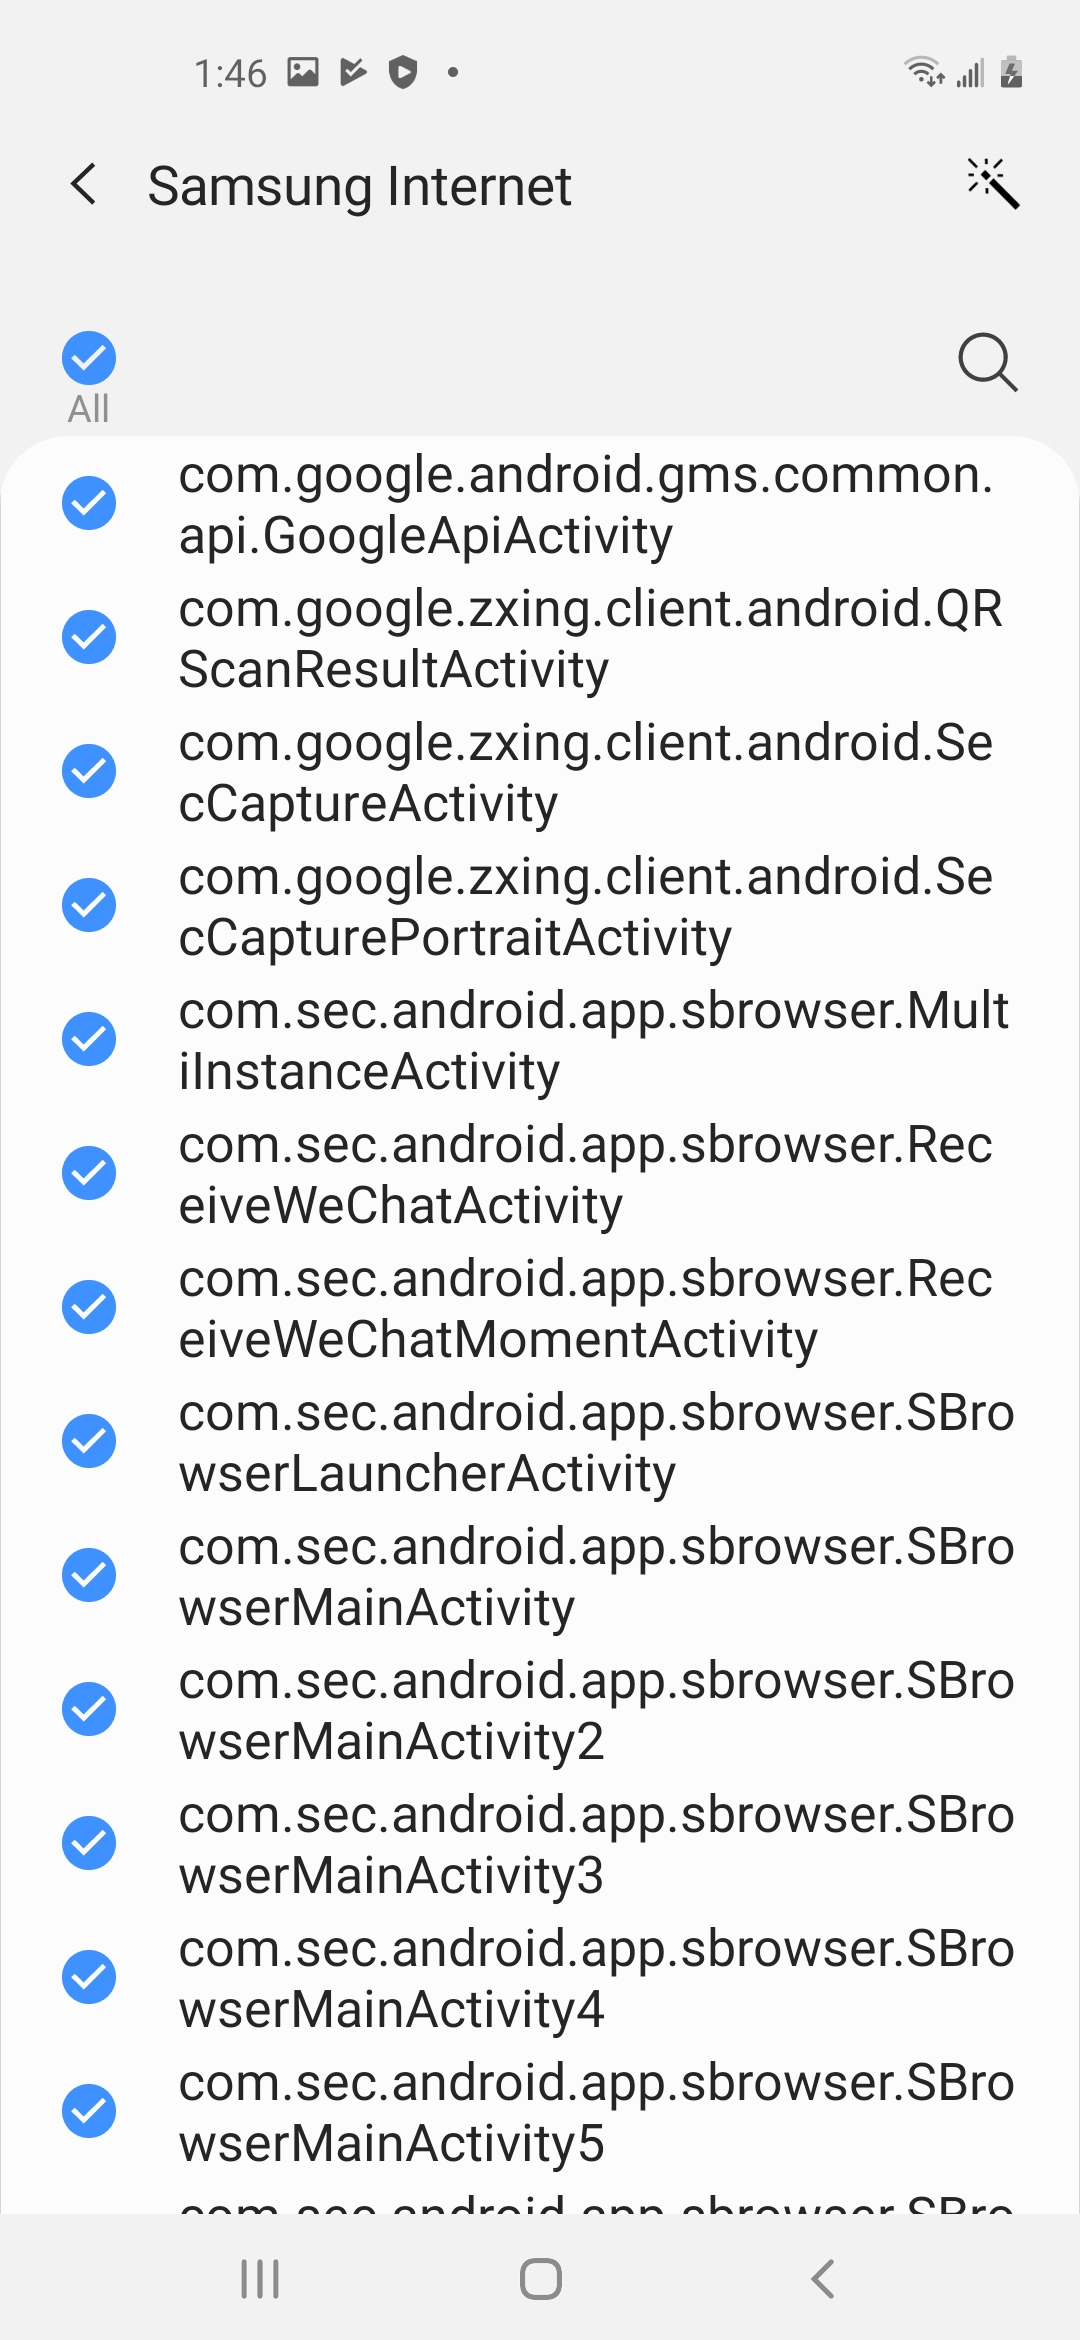 all activities selection from activity list